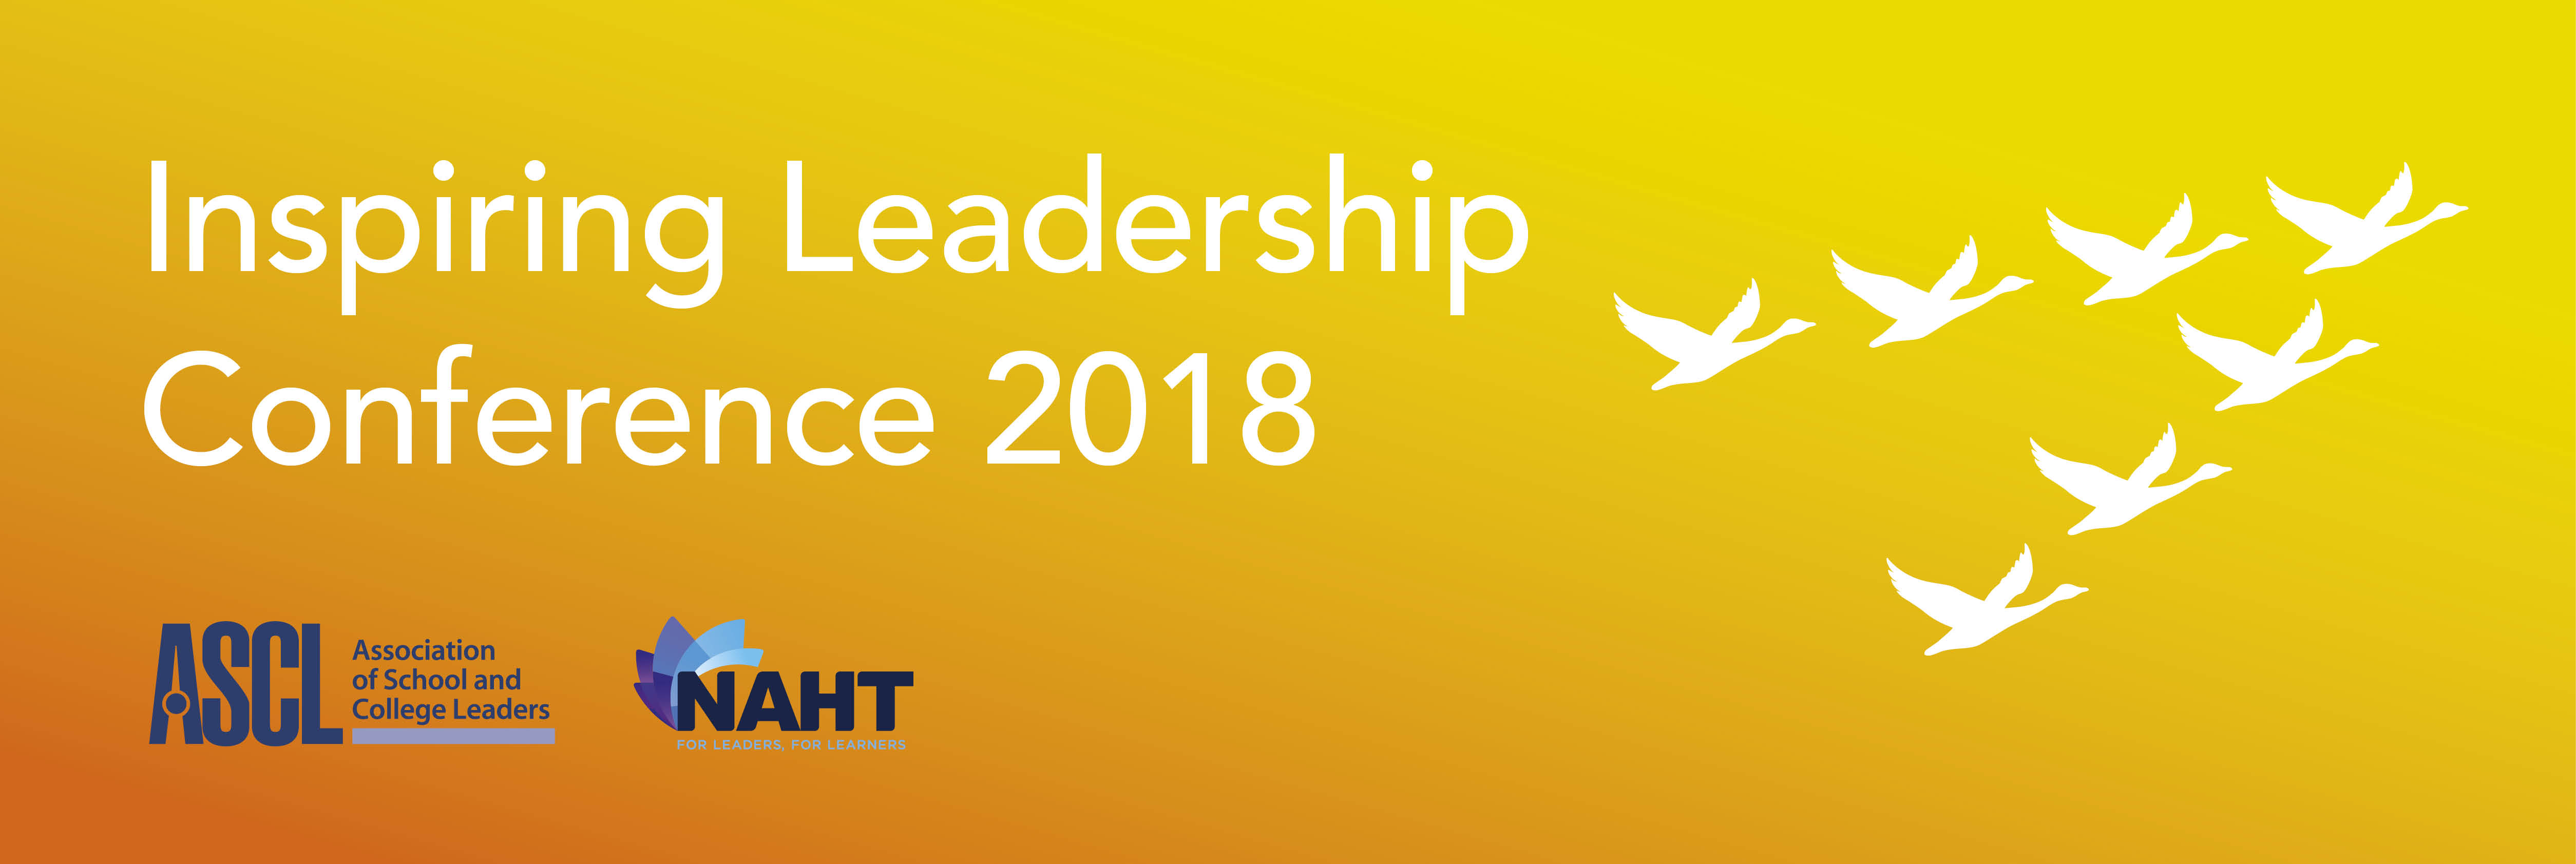 Inspiring Leadership Conference 2018